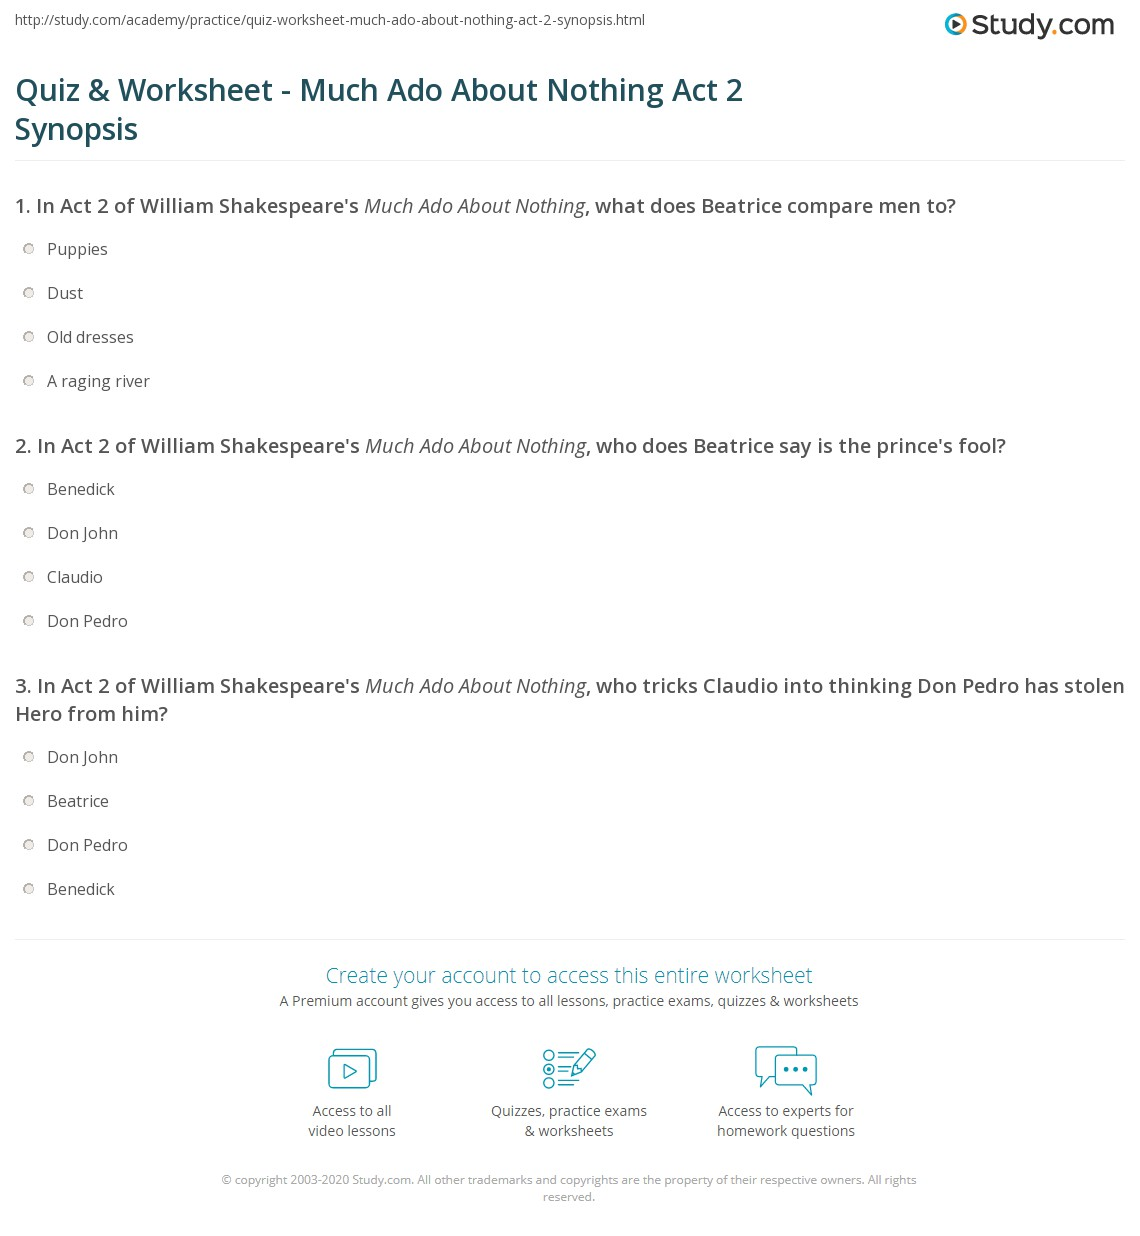 quiz worksheet much ado about nothing act synopsis com print much ado about nothing act 2 summary worksheet